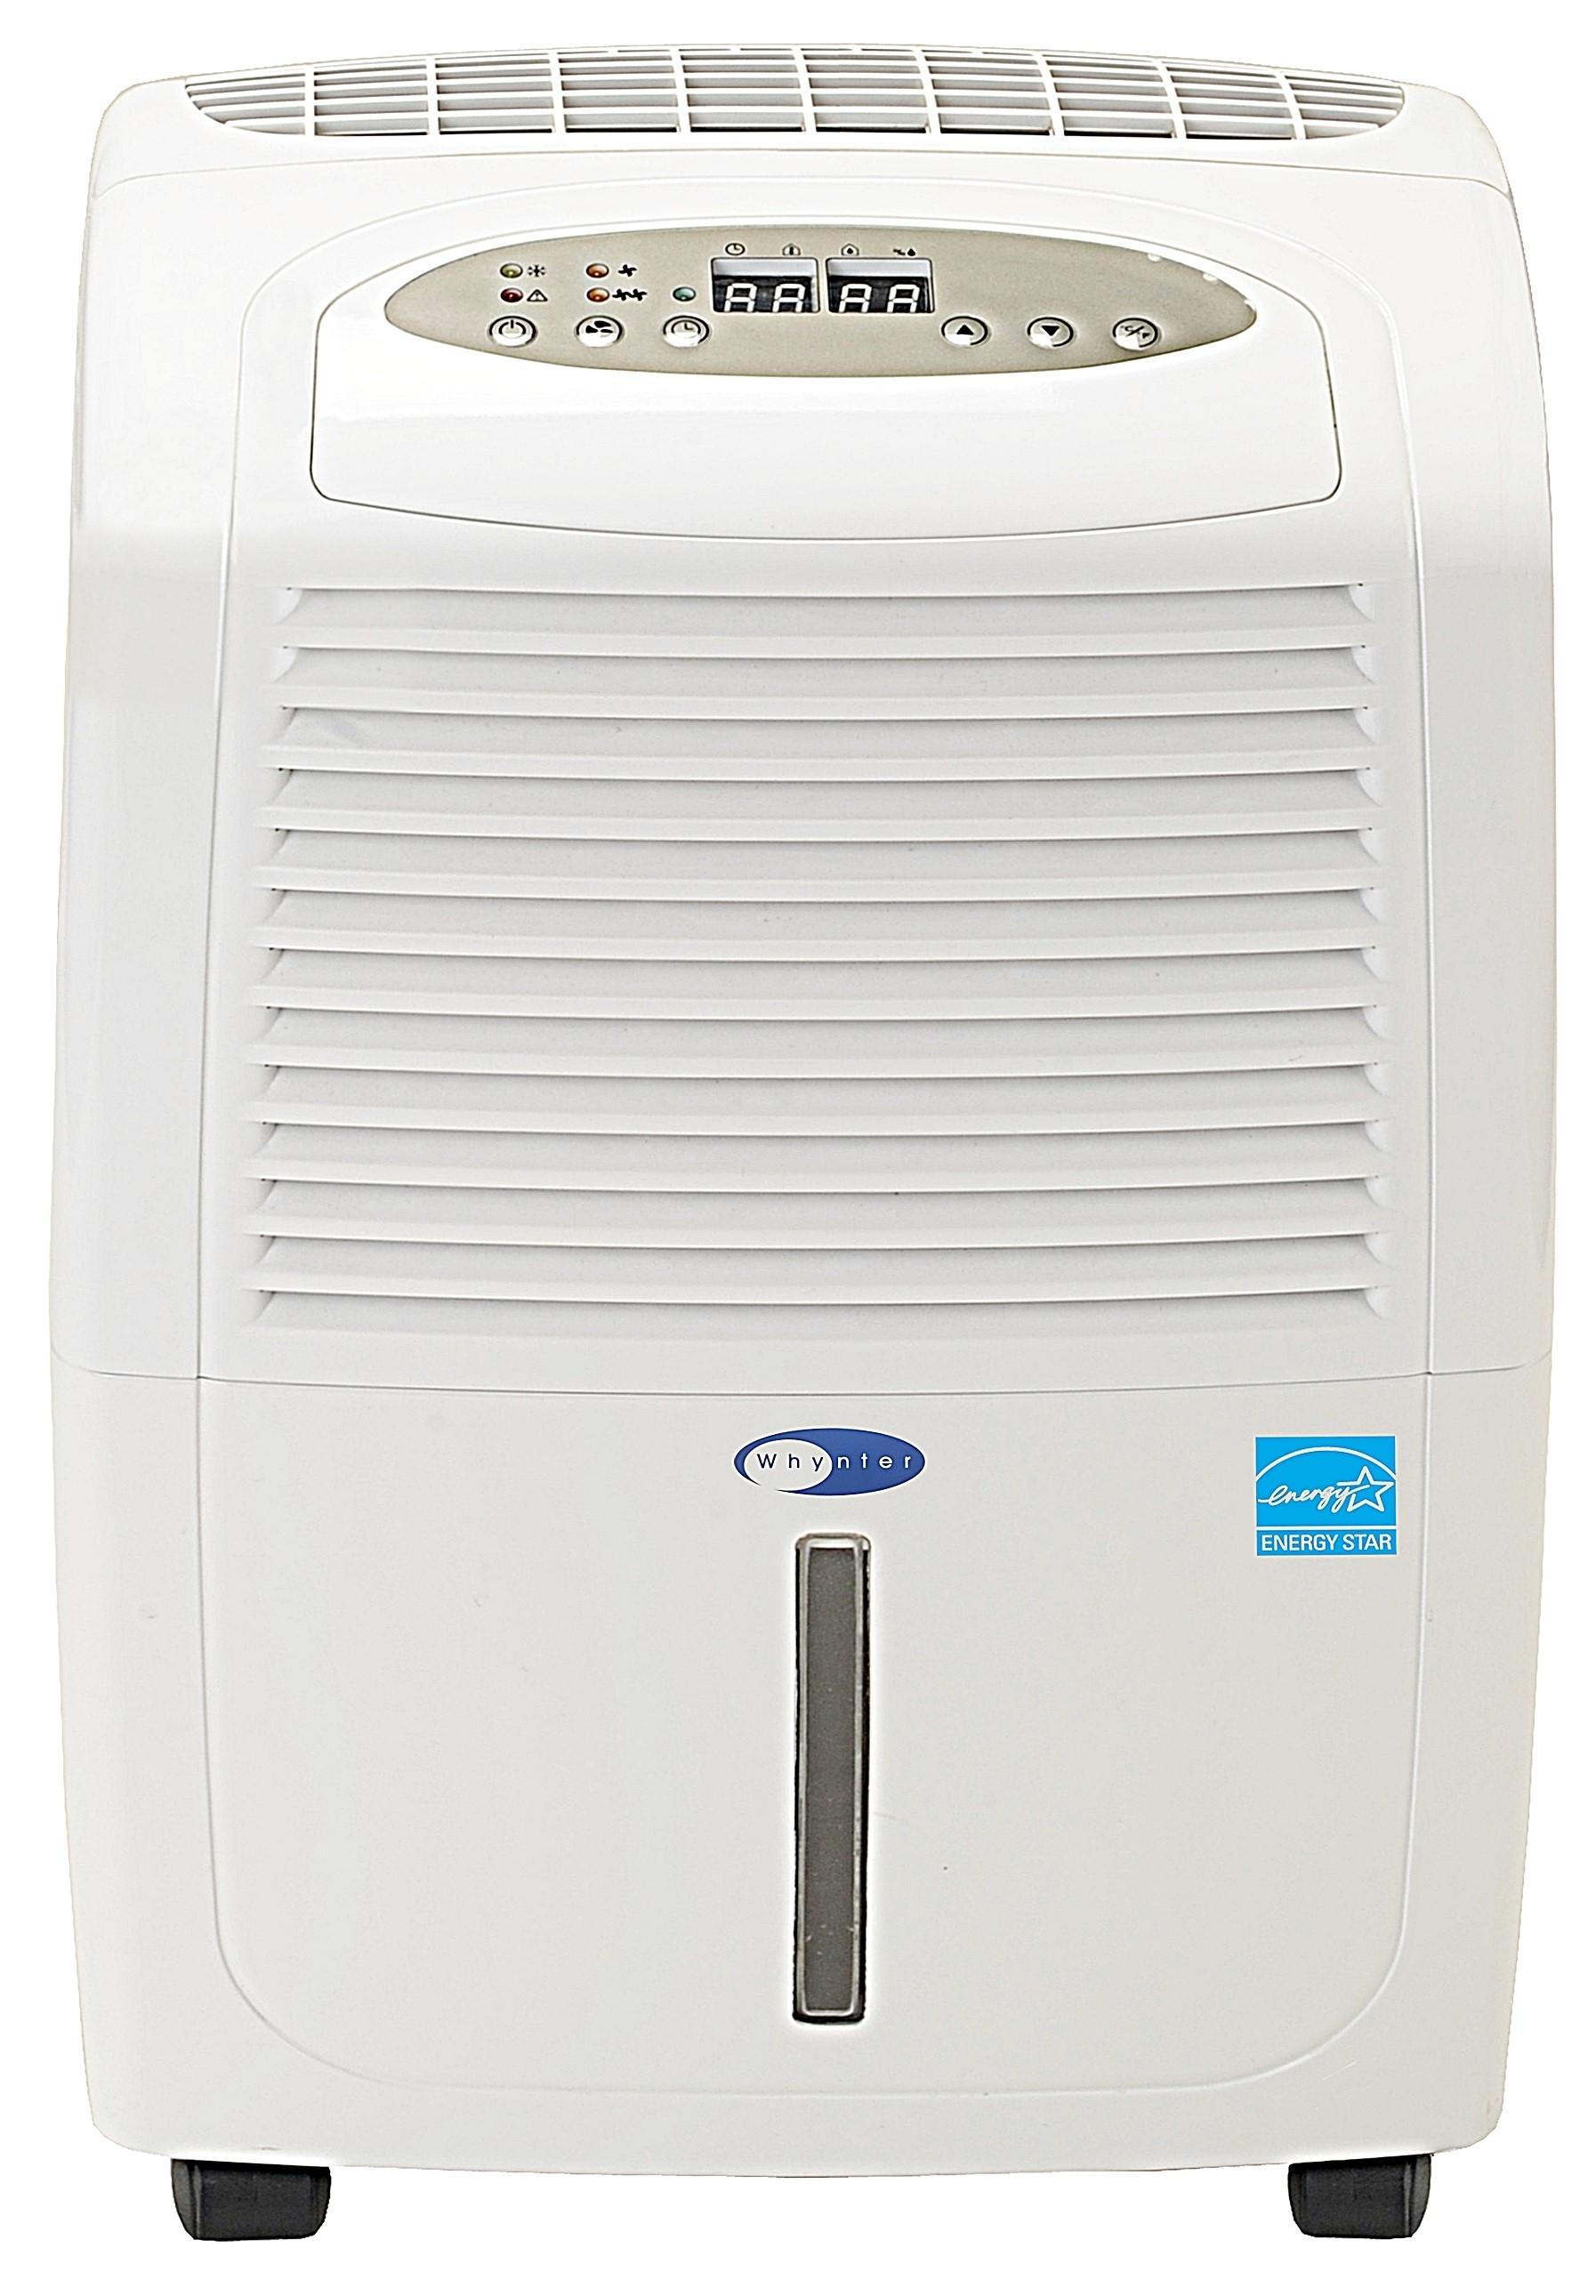 Top 6 Best Portable Dehumidifier and Reviews 2016 #0B8BC0